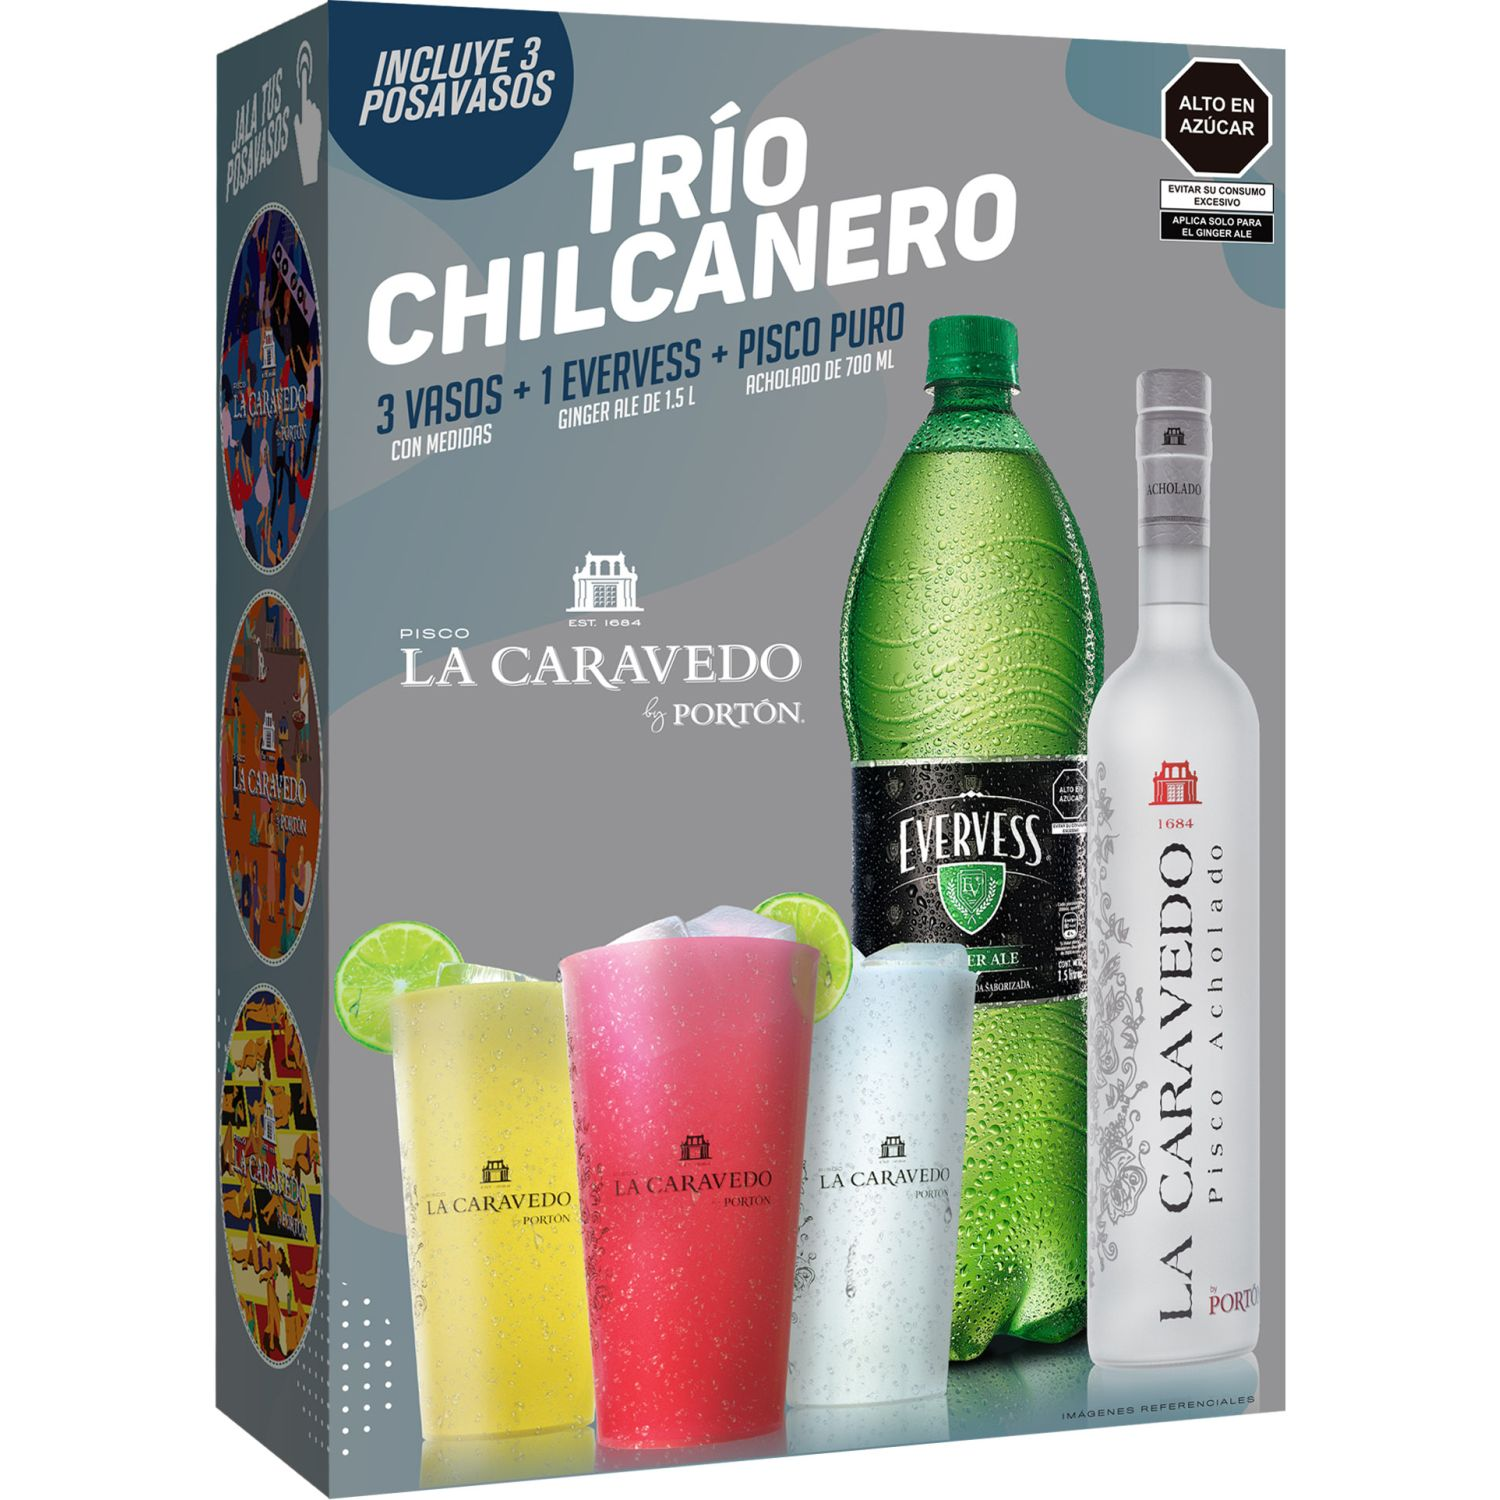 LA CARAVEDO Pack Chilcanero Acholado 700ml Sin color Brandy y aguardientes